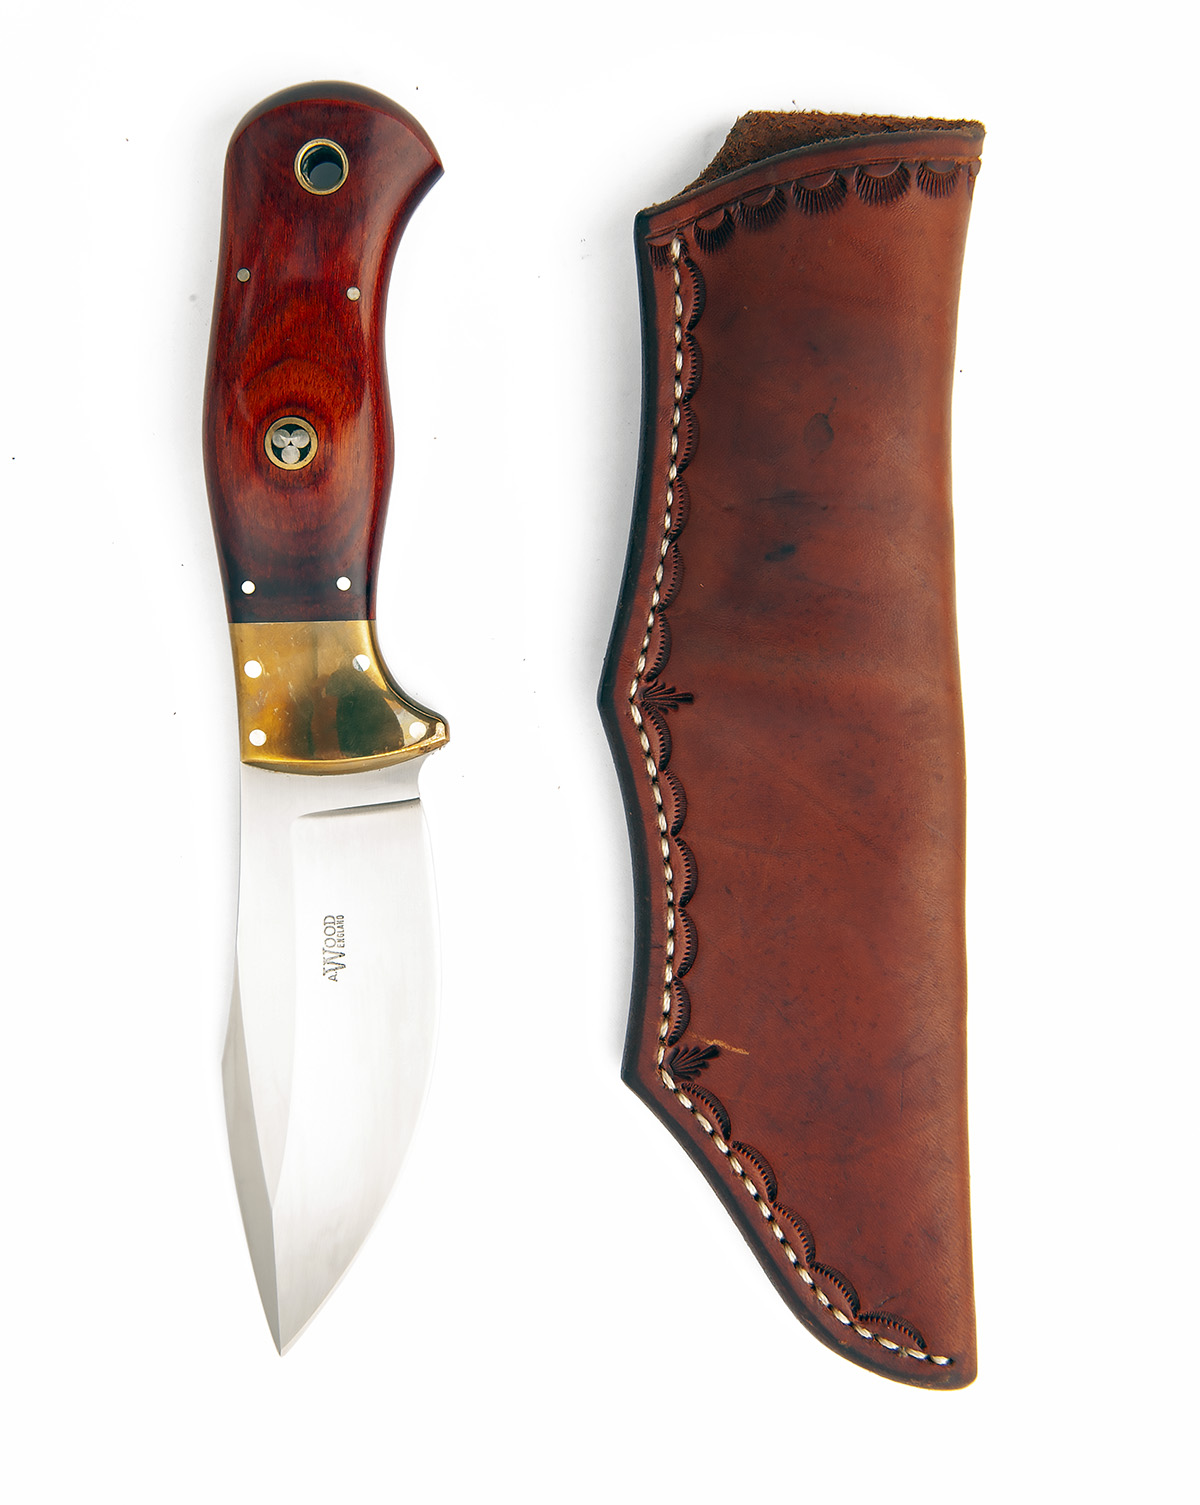 Lot 221 - ALAN WOOD, ENGLAND A FIXED-BLADE SPORTING-KNIFE, MODEL 'ALASKA', with polished drop-point 4in. blade